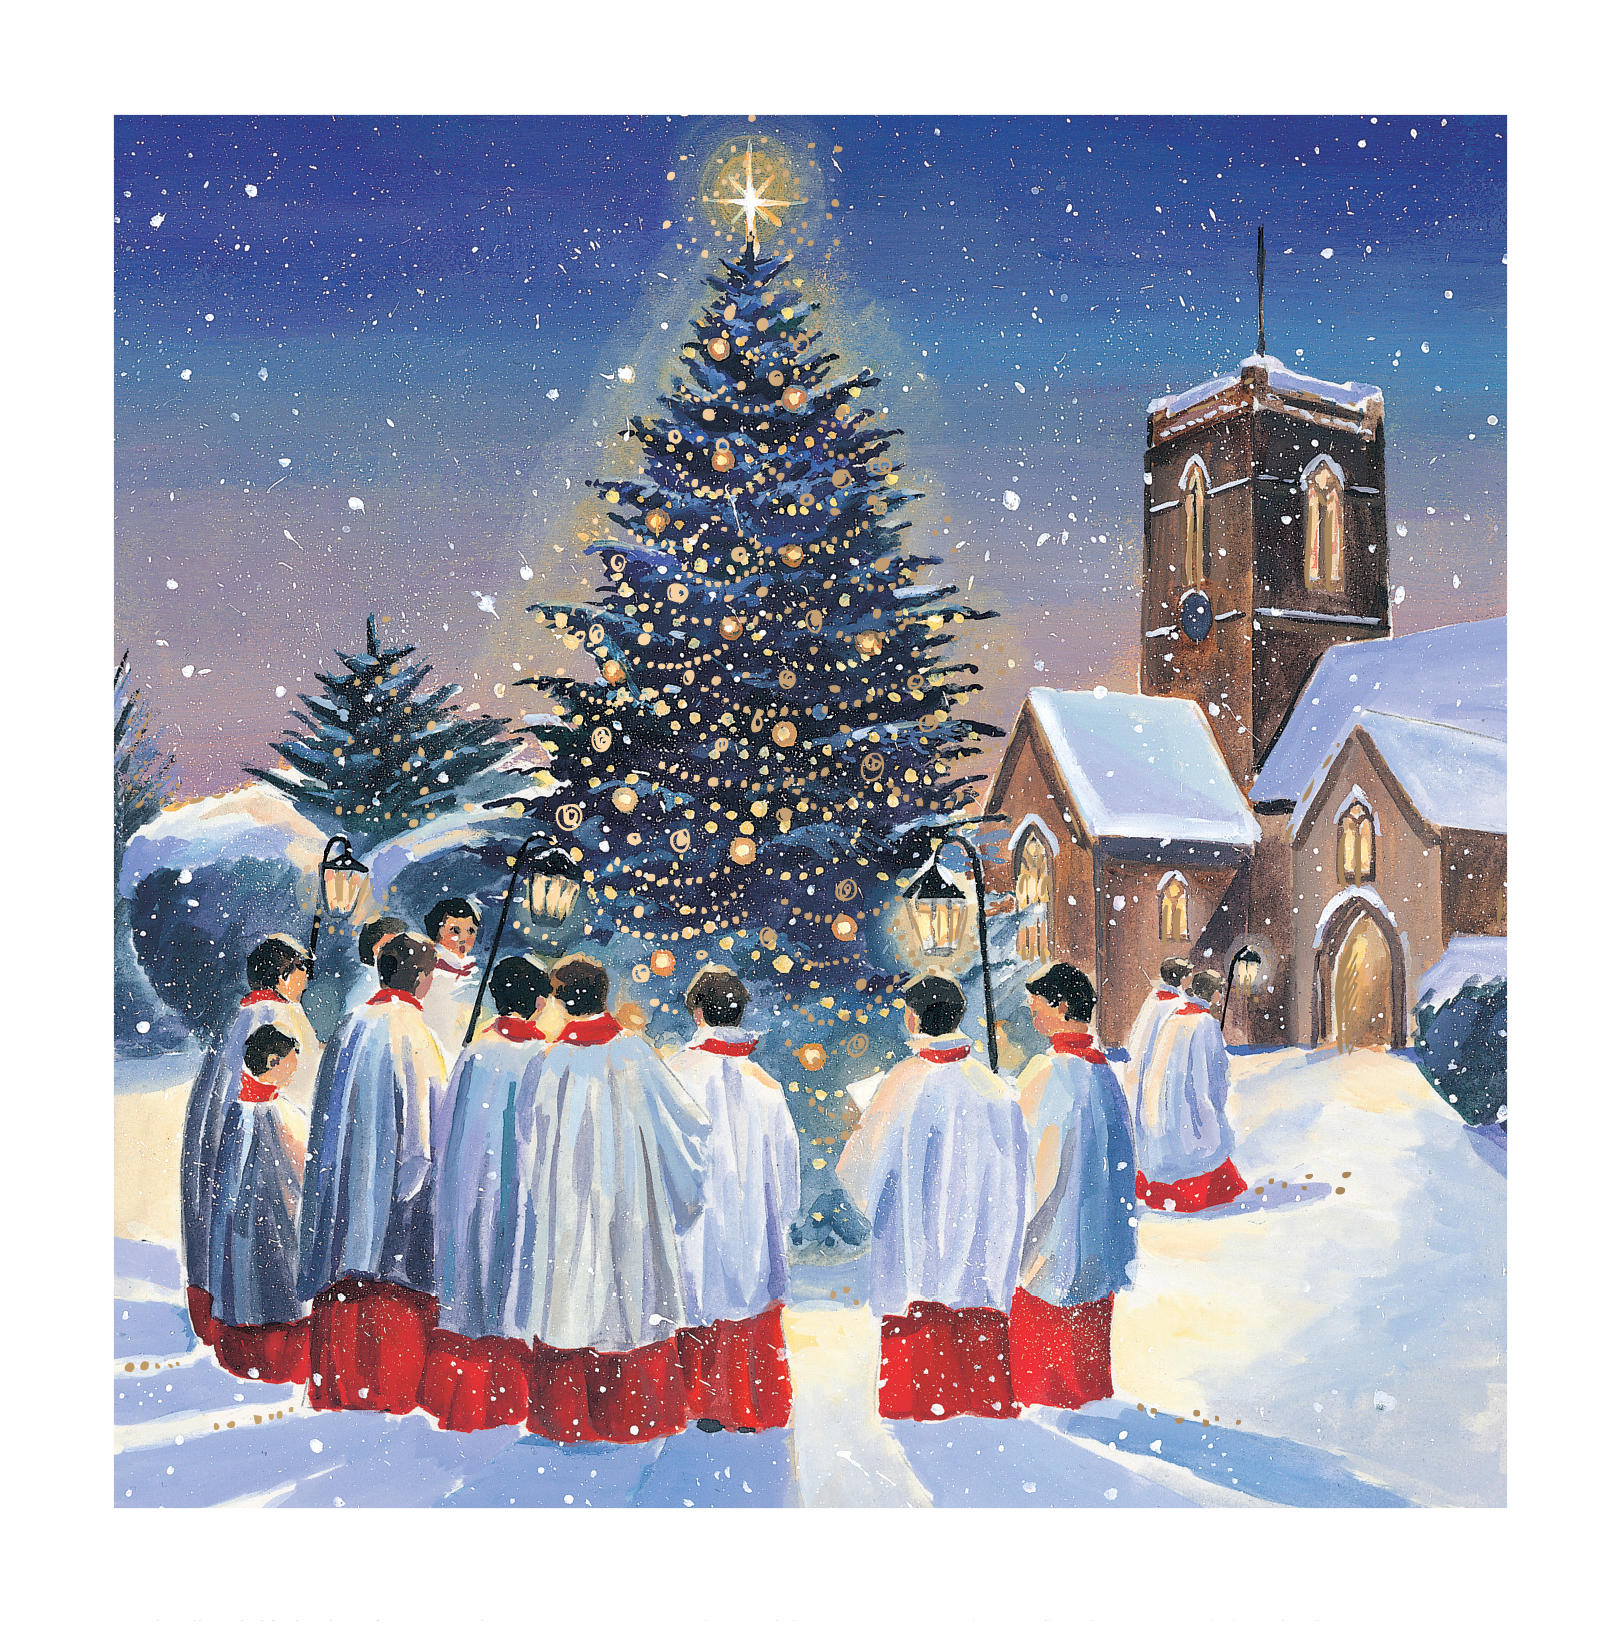 Carol singer stand around a Christmas tree